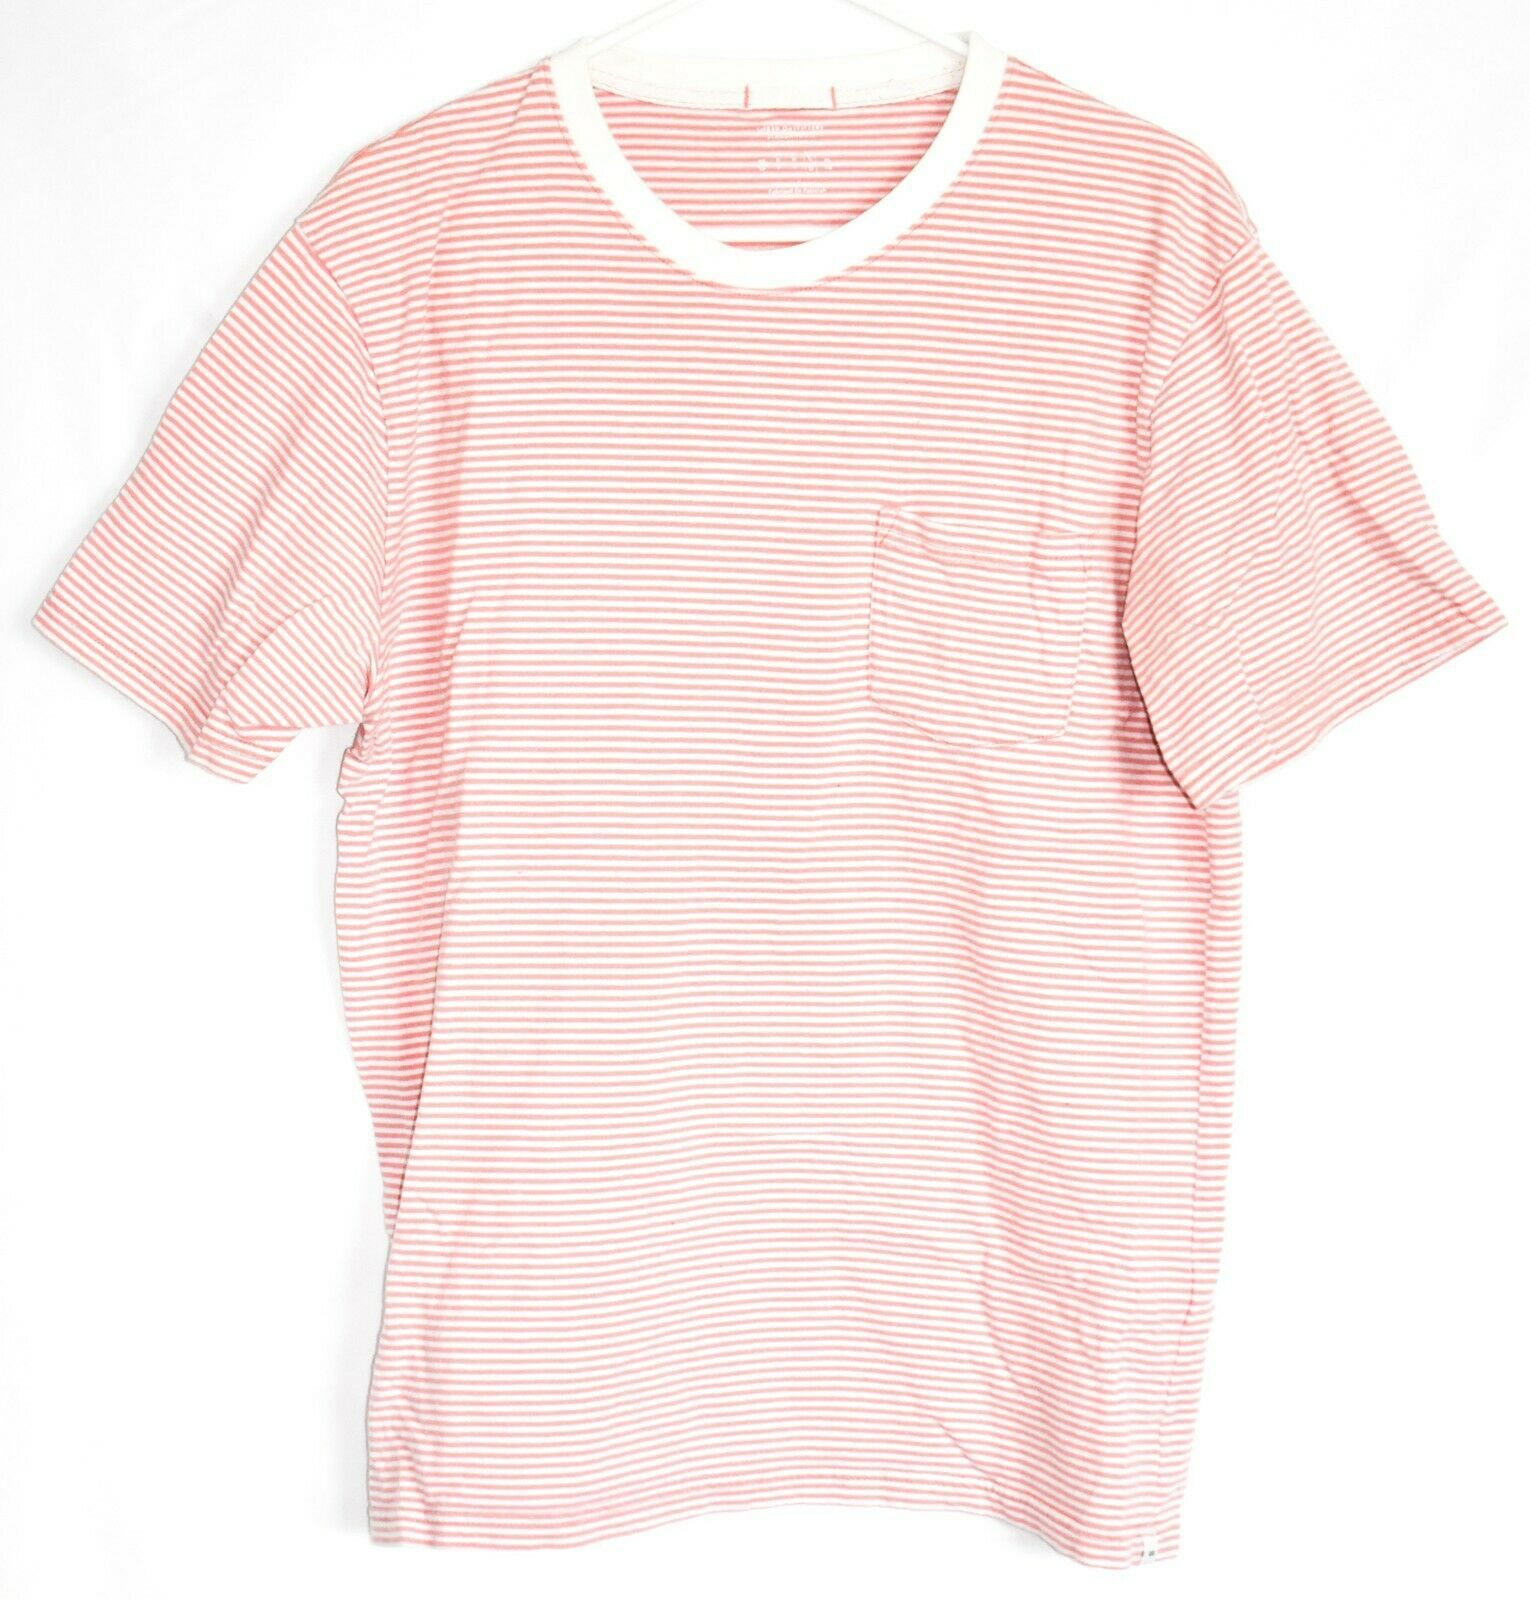 Urban Outfitters Standard Fit Pink Thin Stripe Striped Short Sleeve Shirt Size L